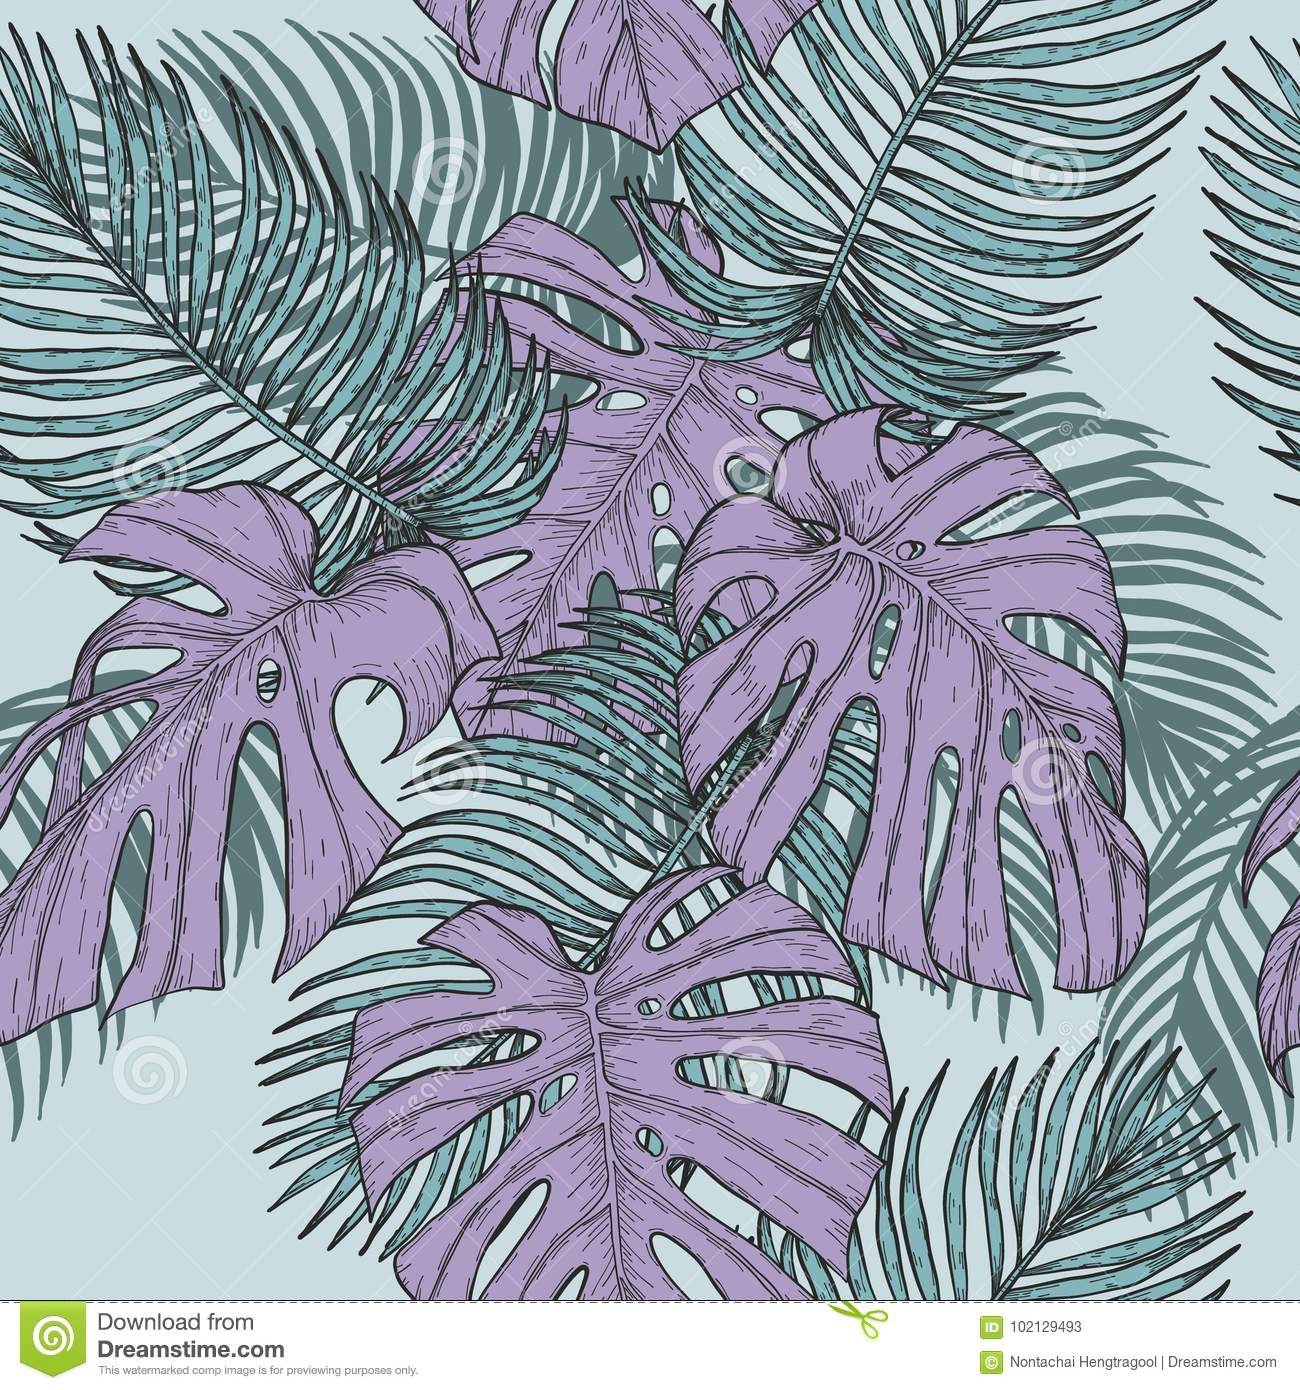 Areca Palm And Monstera Sketch By Hand DrawingPlam Leaf Vector Pattern On Vintage BackgroundVector Leaves Art Highly Detailed In Line Style